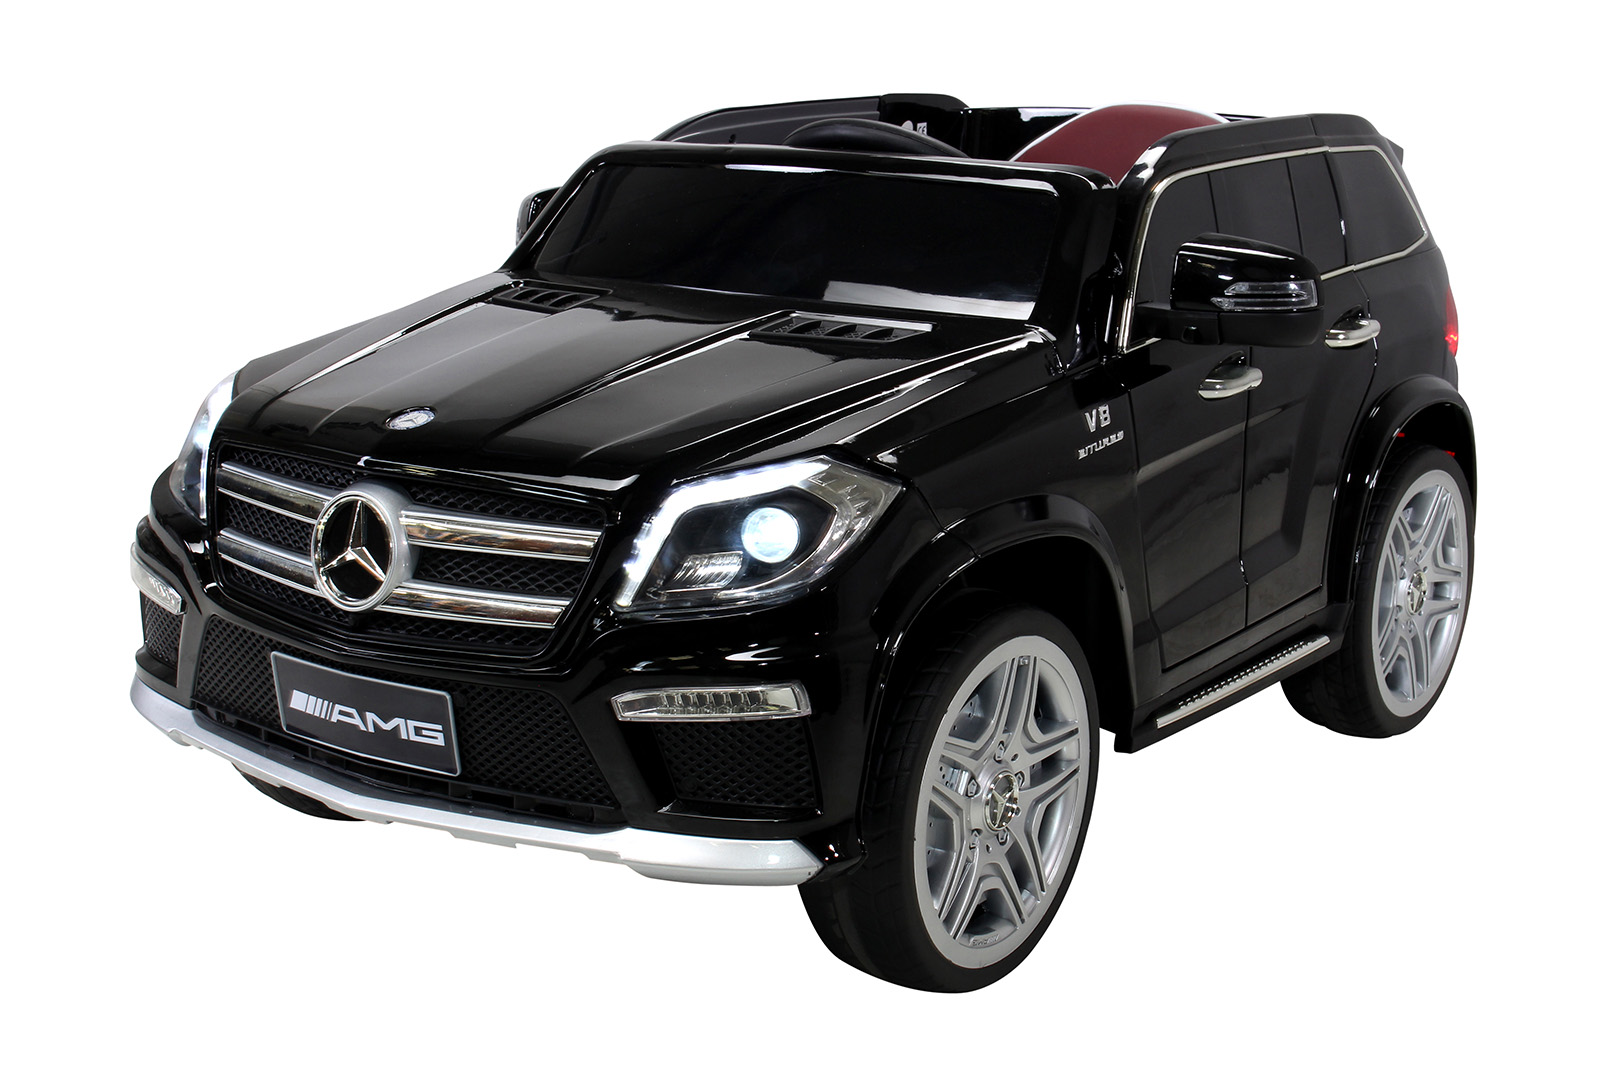 kinder elektro auto mercedes gl63 lizenziert suv. Black Bedroom Furniture Sets. Home Design Ideas